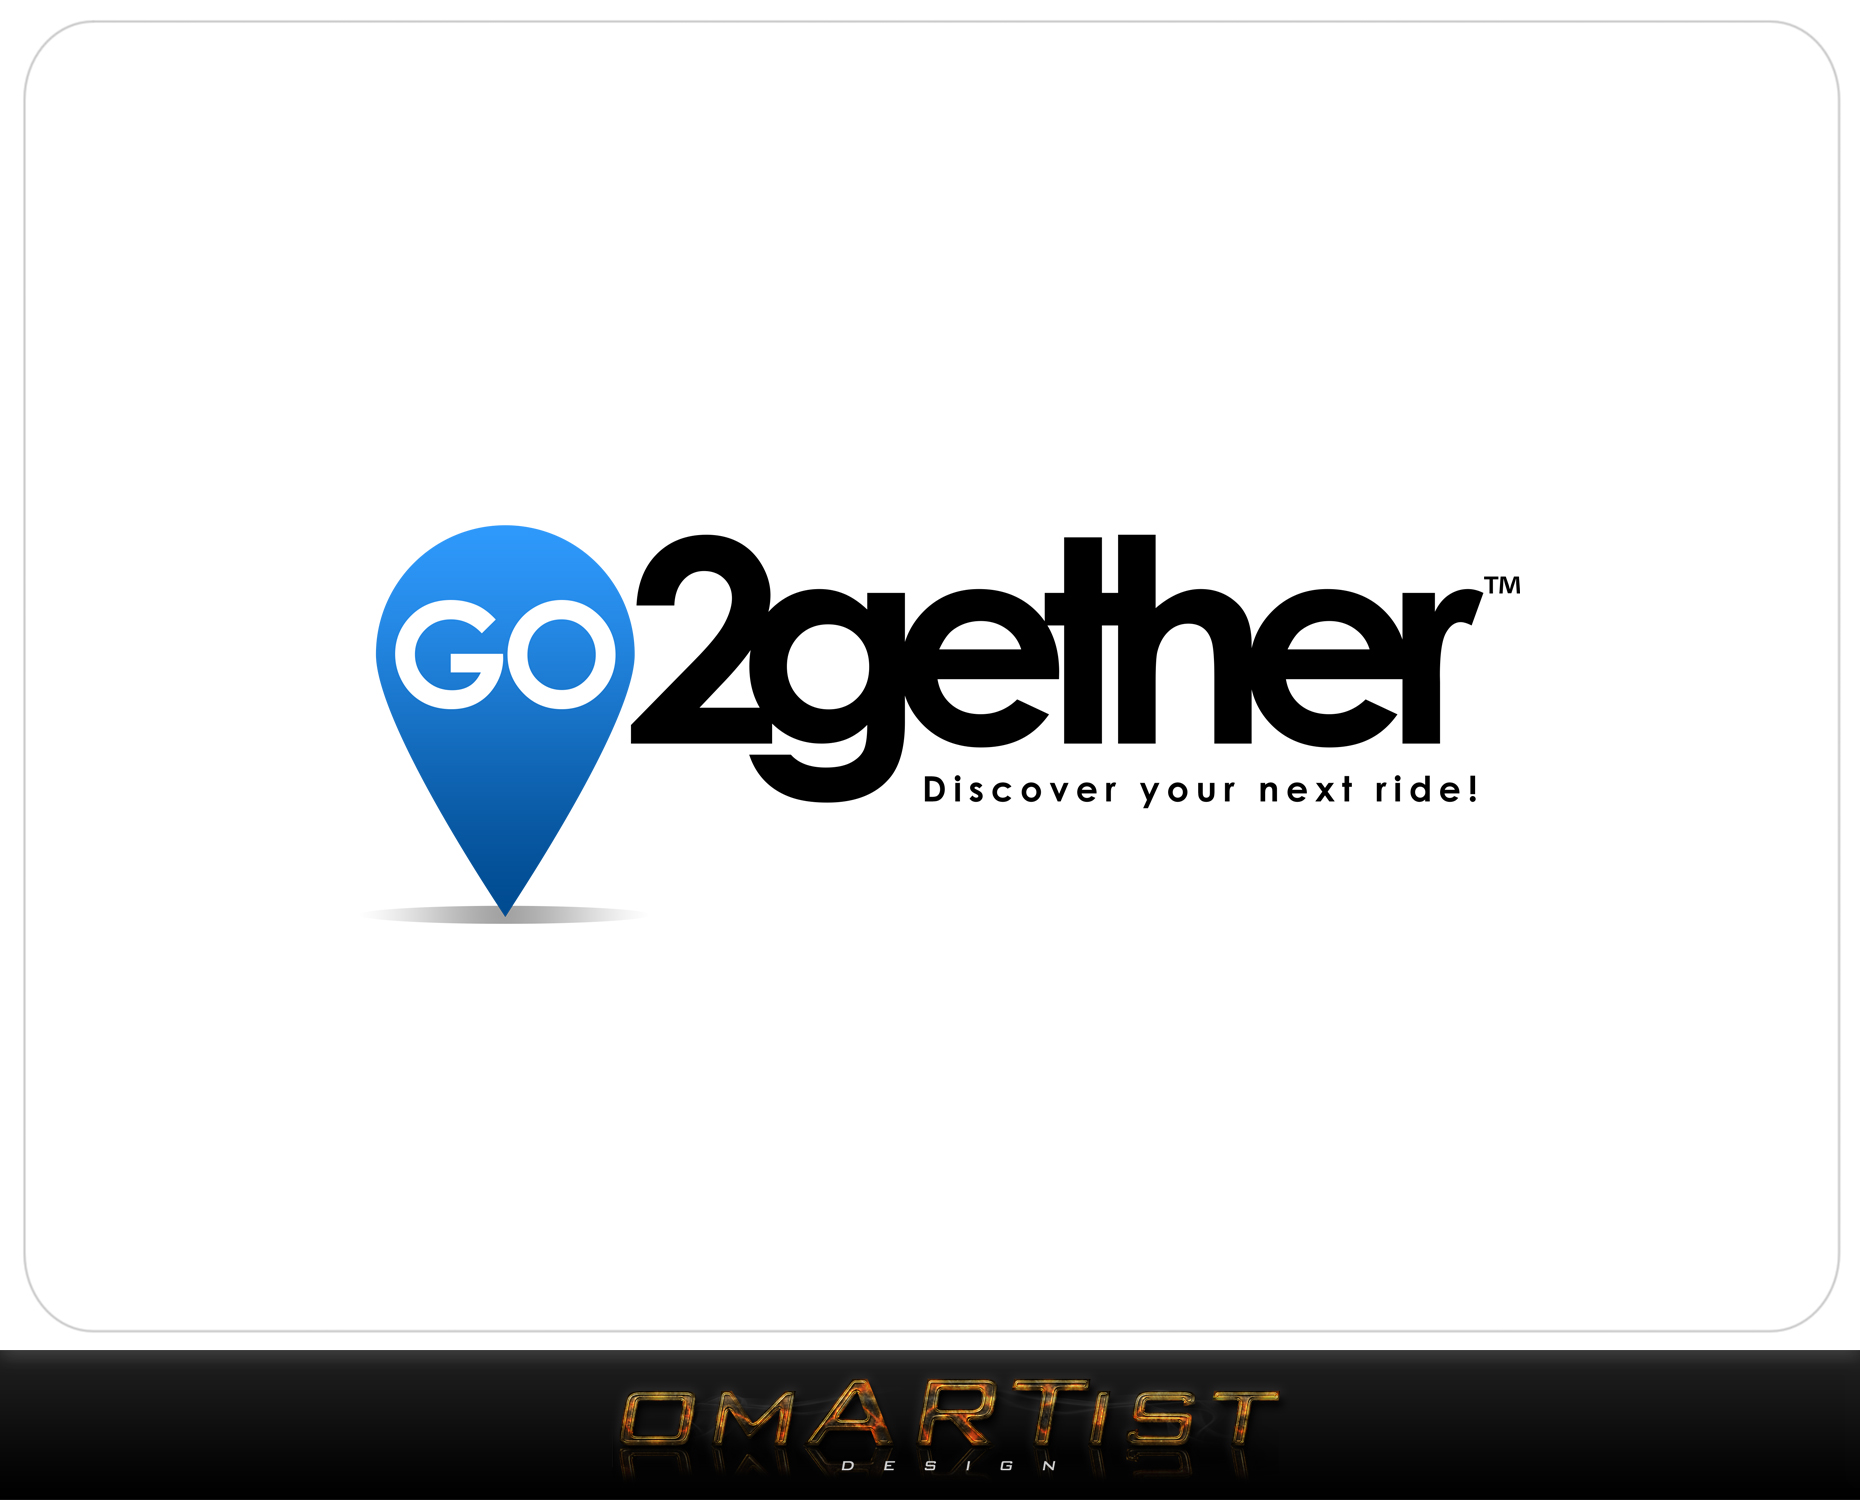 Logo Design by omARTist - Entry No. 61 in the Logo Design Contest Captivating Logo Design for GO2GETHER.